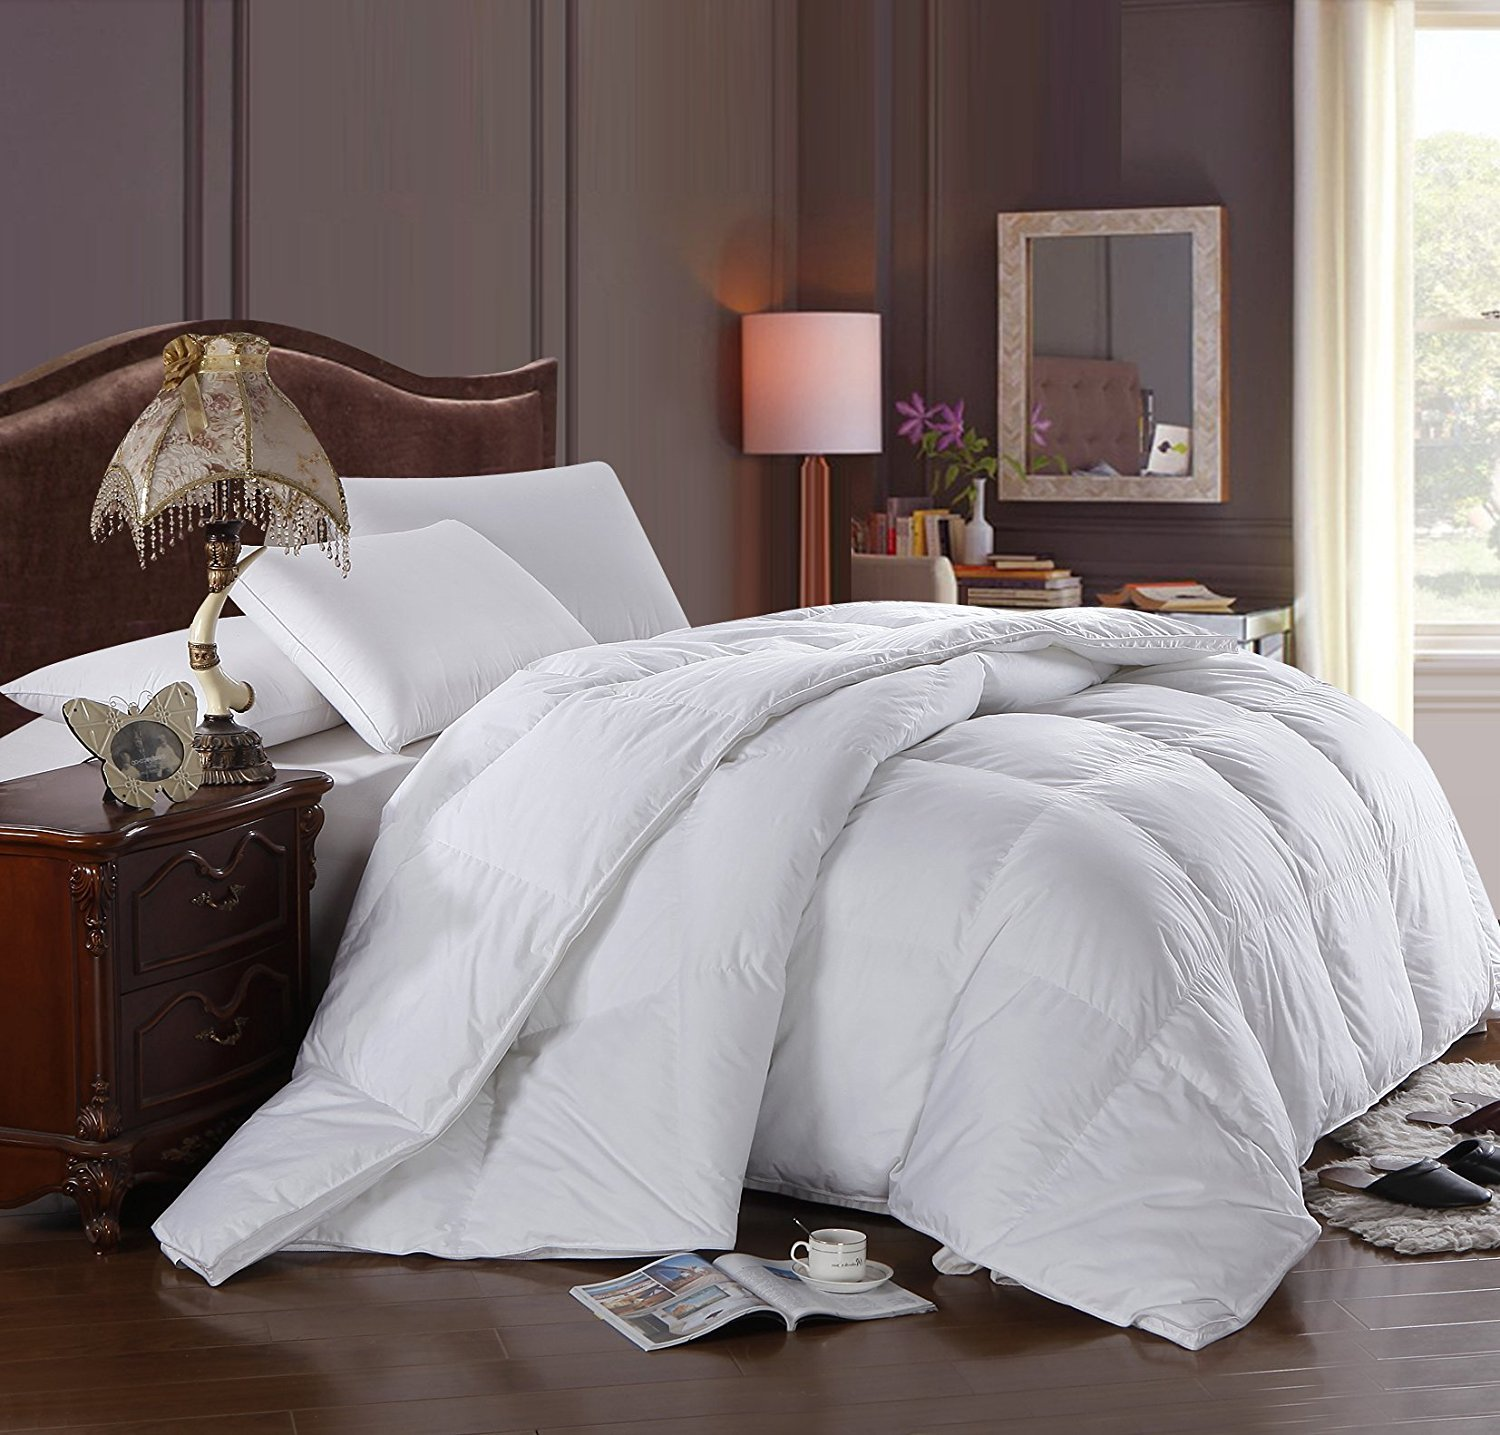 Royal Hotel's 300 Thread Count King / California-King Size Goose Down Alternative Comforter 100% Cotton Shell 300 TC - 750FP - 86 Oz - Solid White